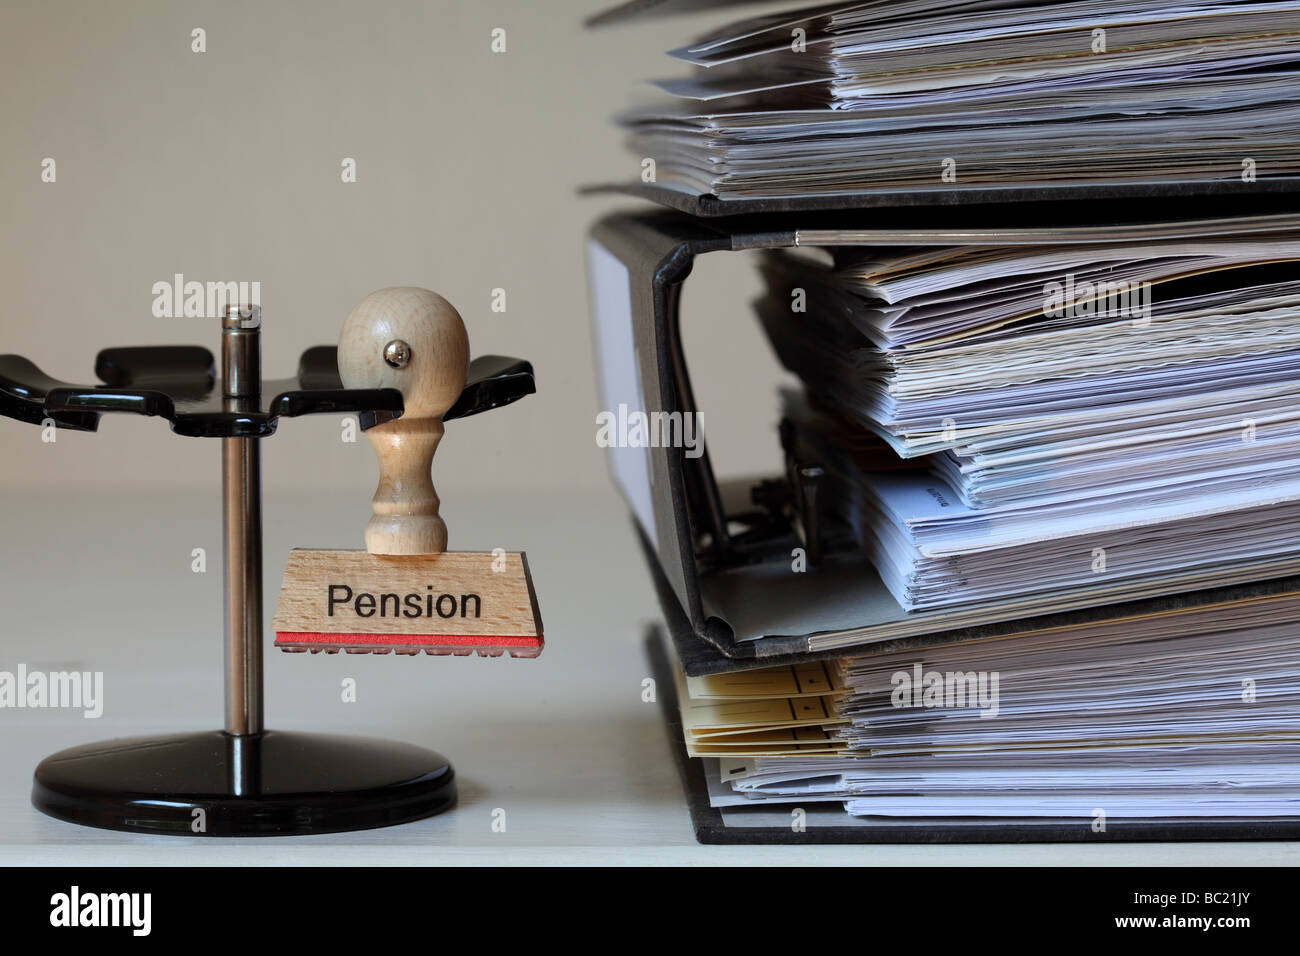 Stamp with inscription Pension next to a pile of files - Stock Image